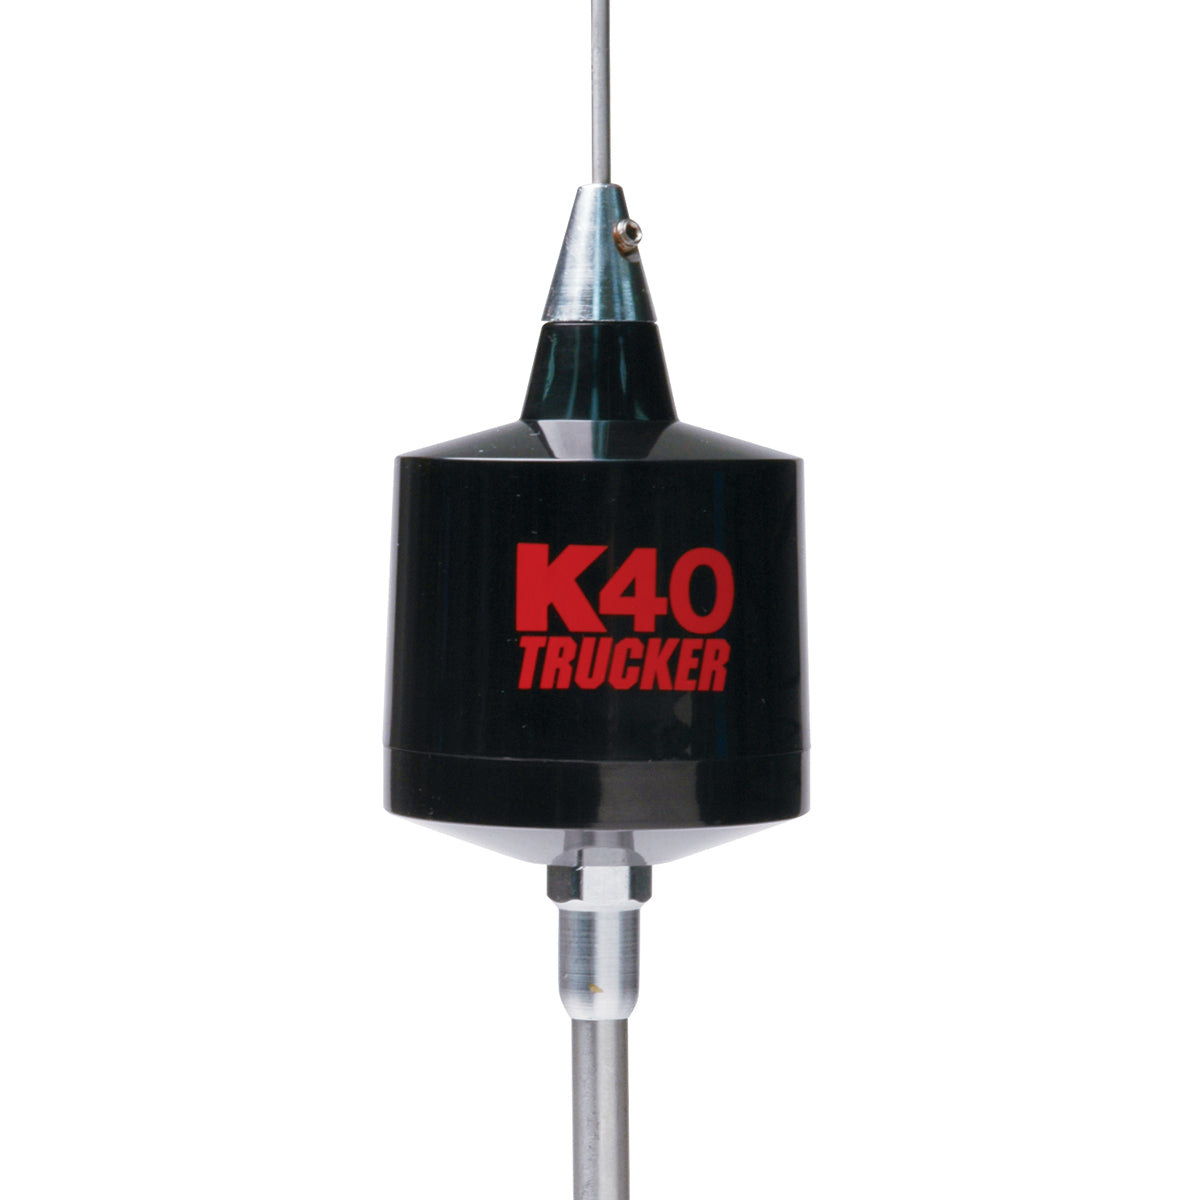 "49"" Trucker Center Load 3500 Watt CB Antenna, Black with Red K40 Logo"